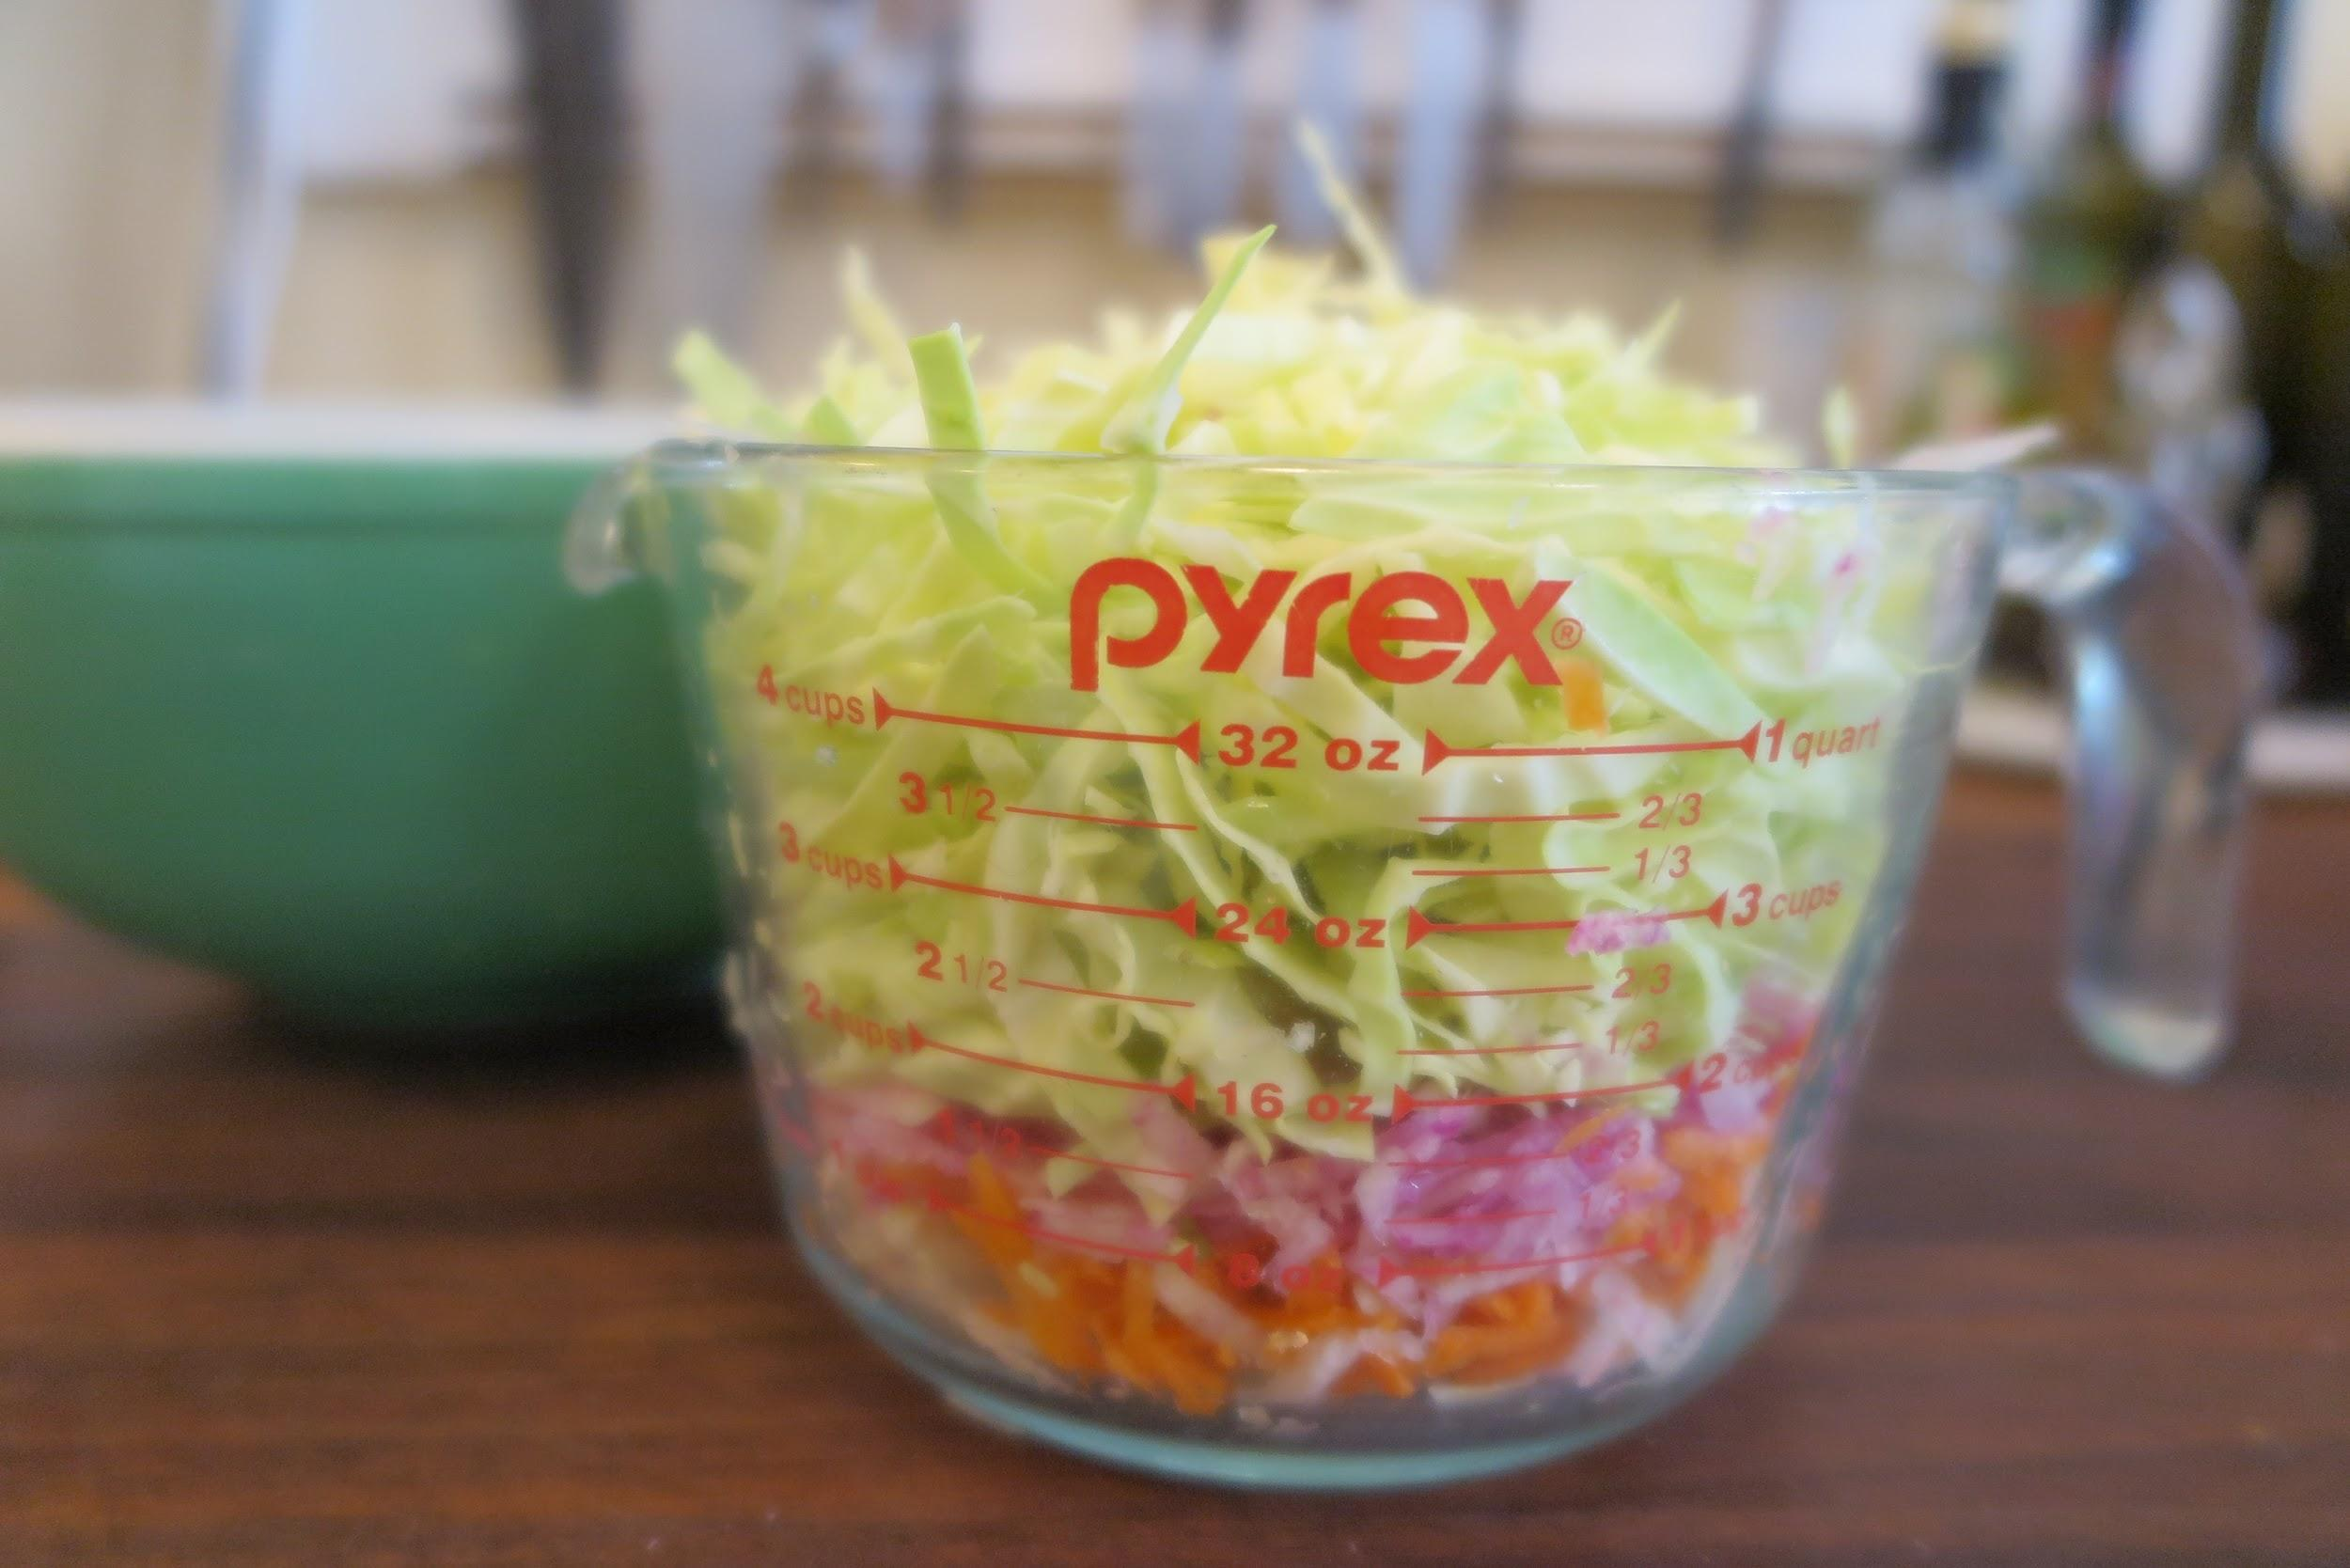 A large glass Pyrex measuring cup filled with shredded cabbage, radishes, and carrots